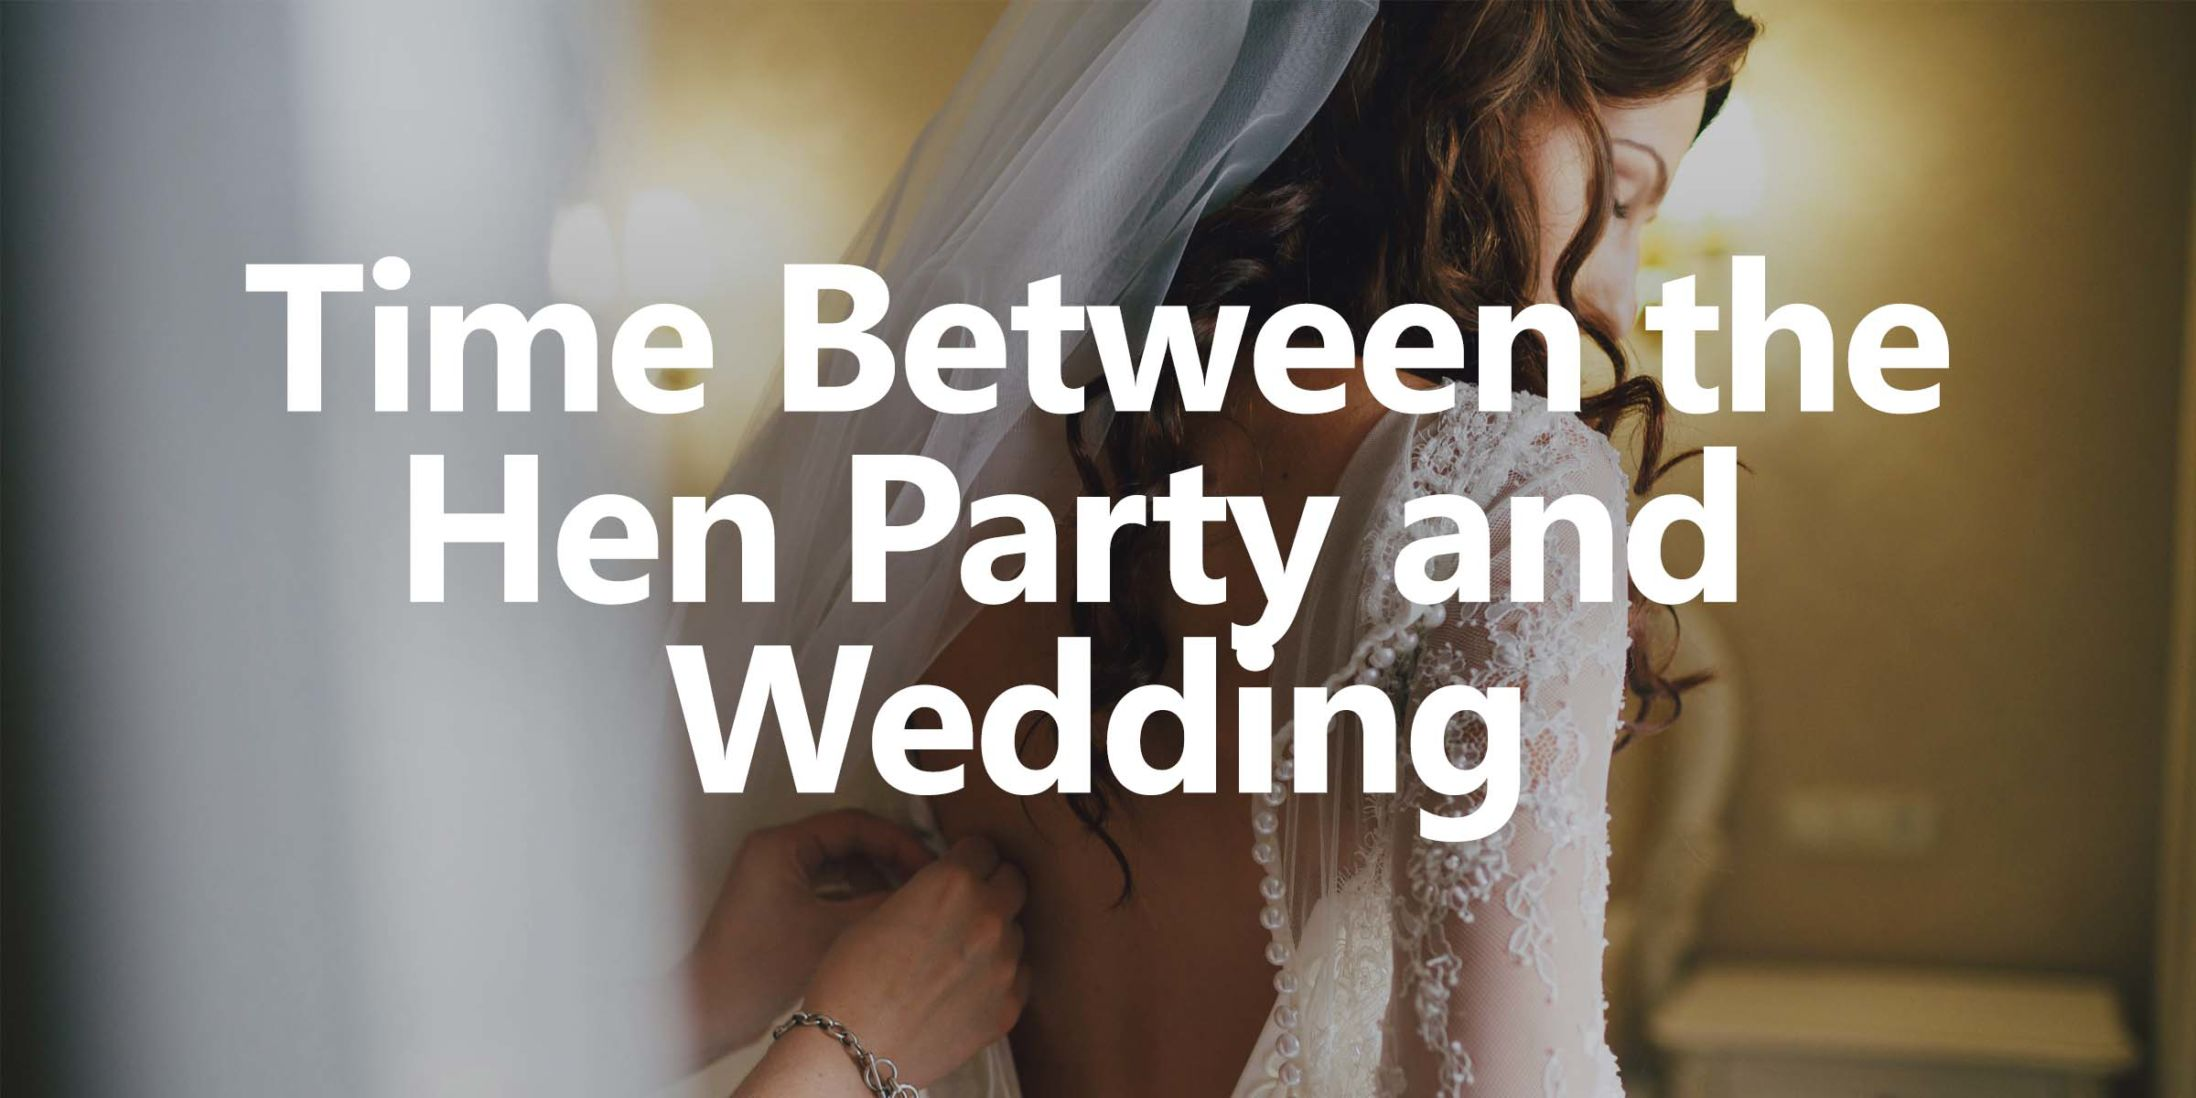 Time Between the Hen Party and the Wedding